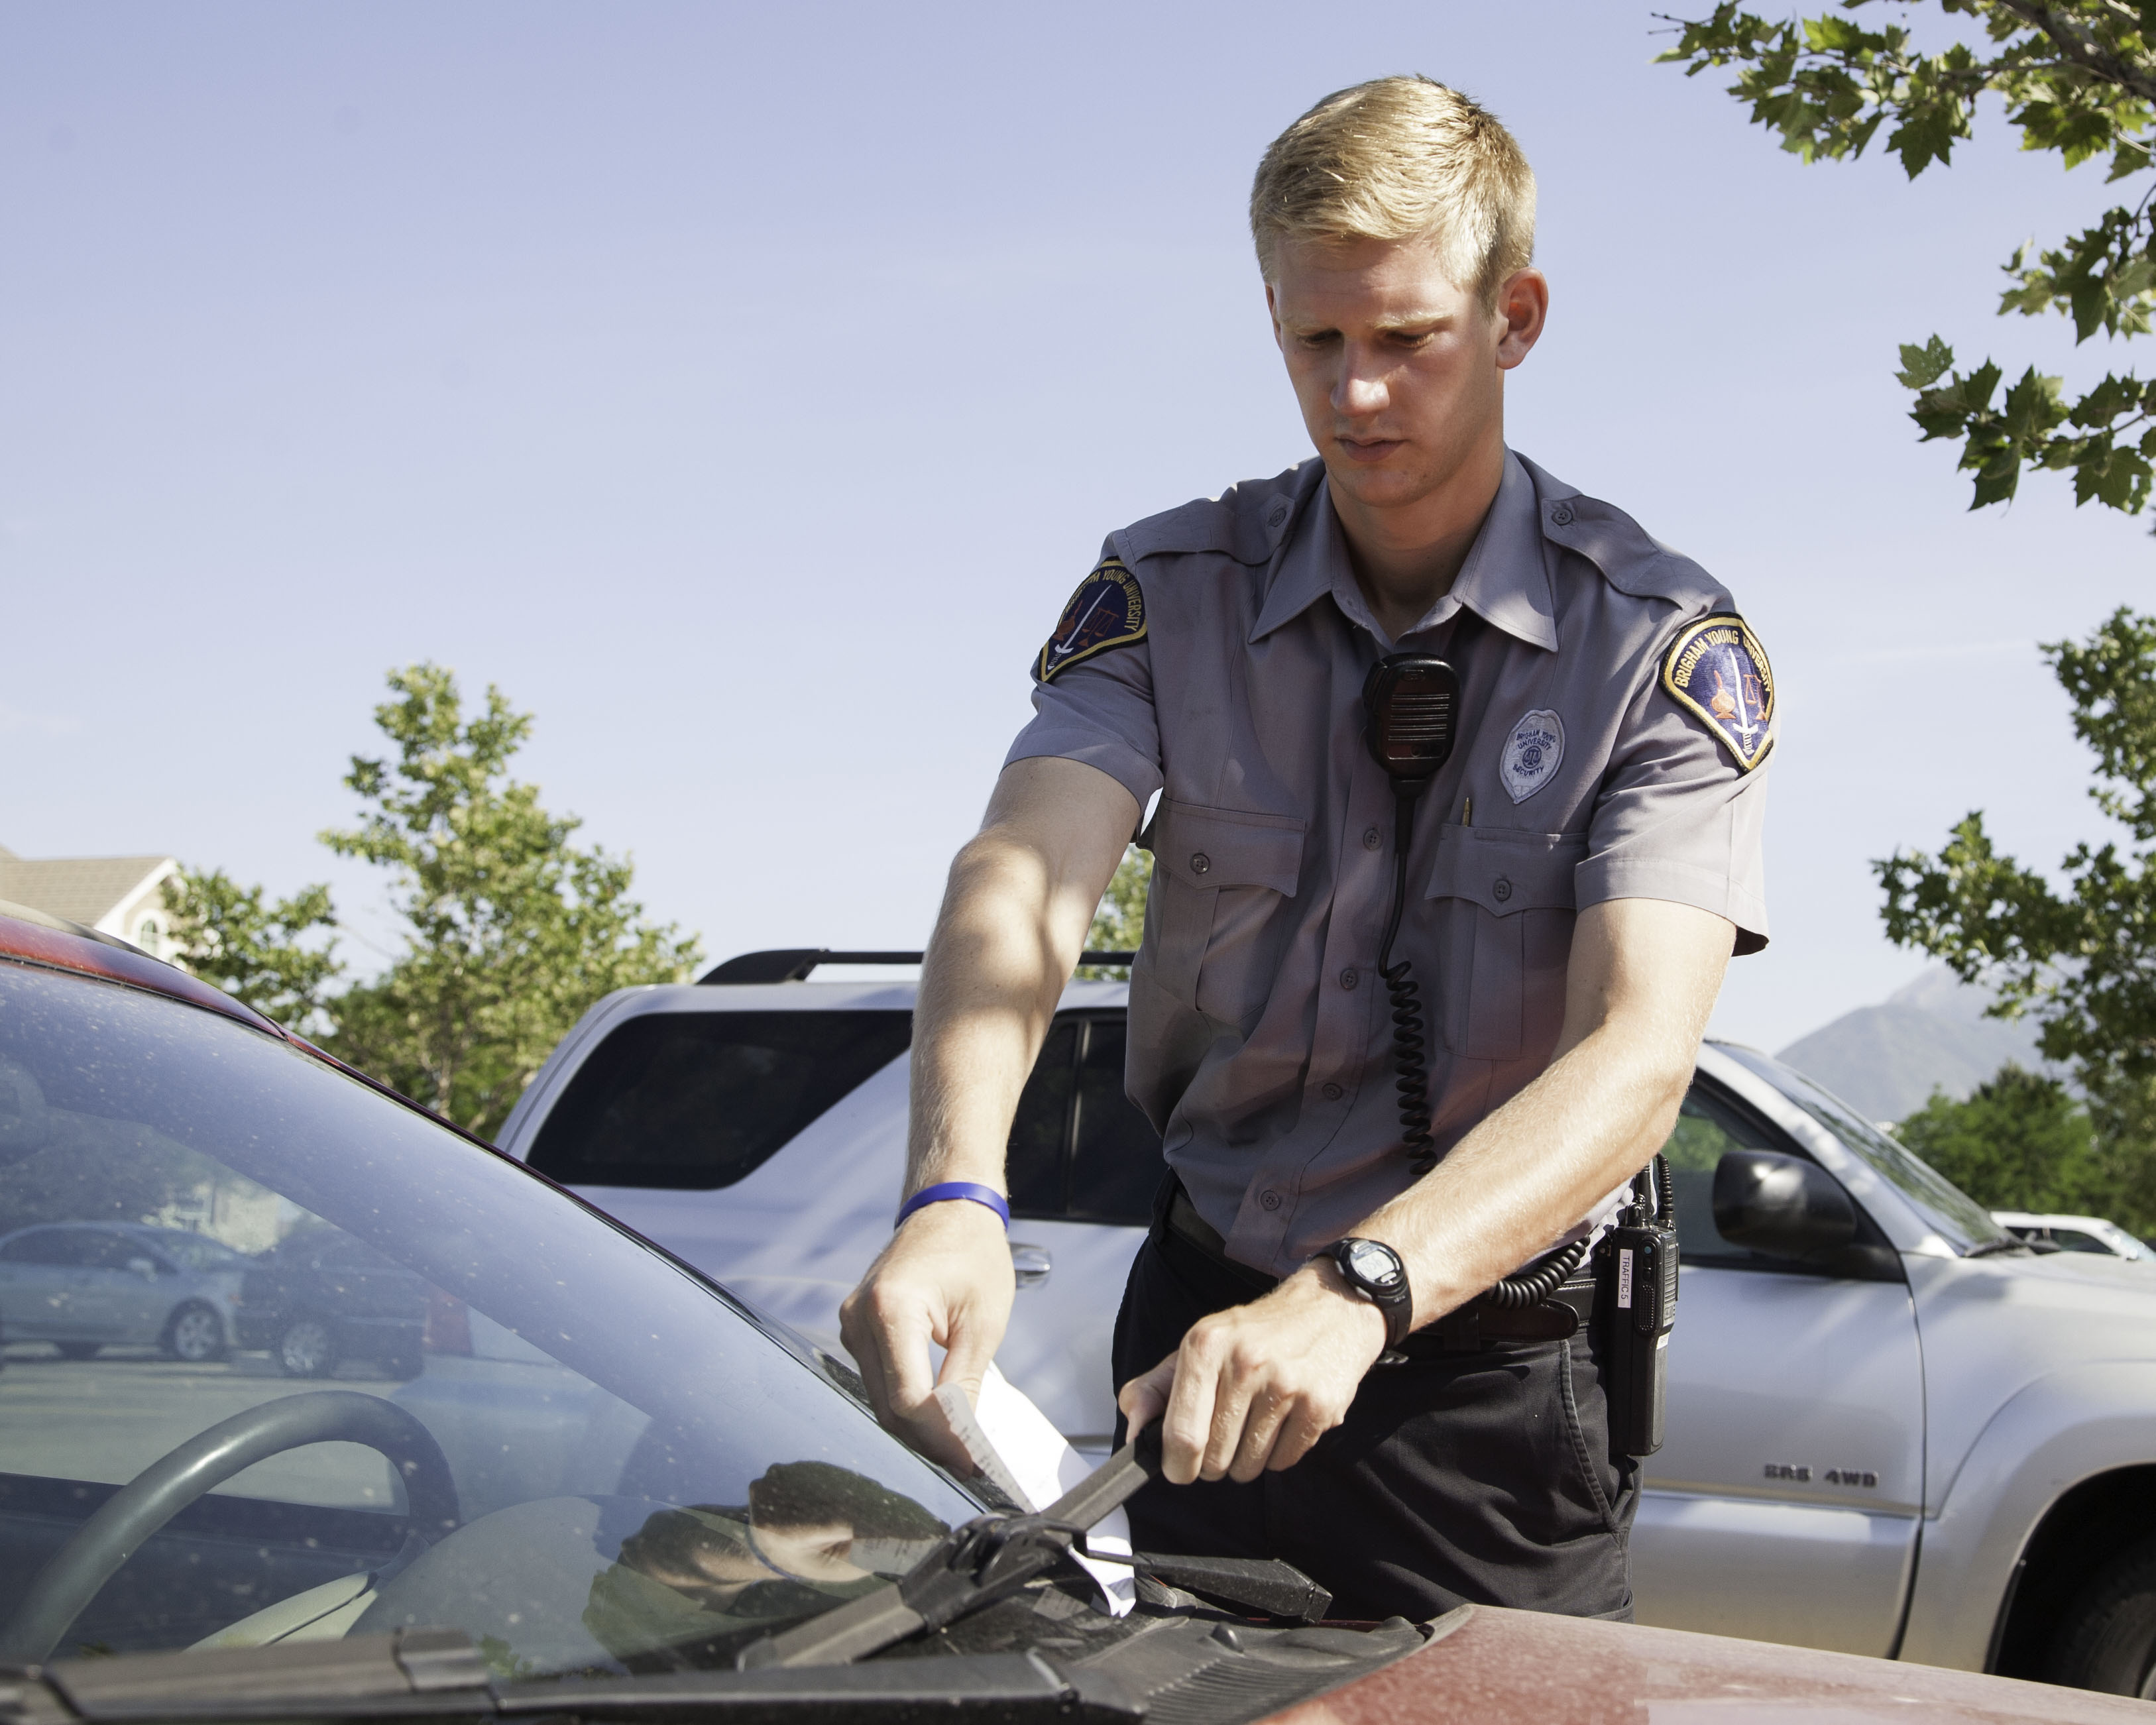 BYU parking police issue tickets to illegally parked cars on campus. (Photo by Elliott Miller)